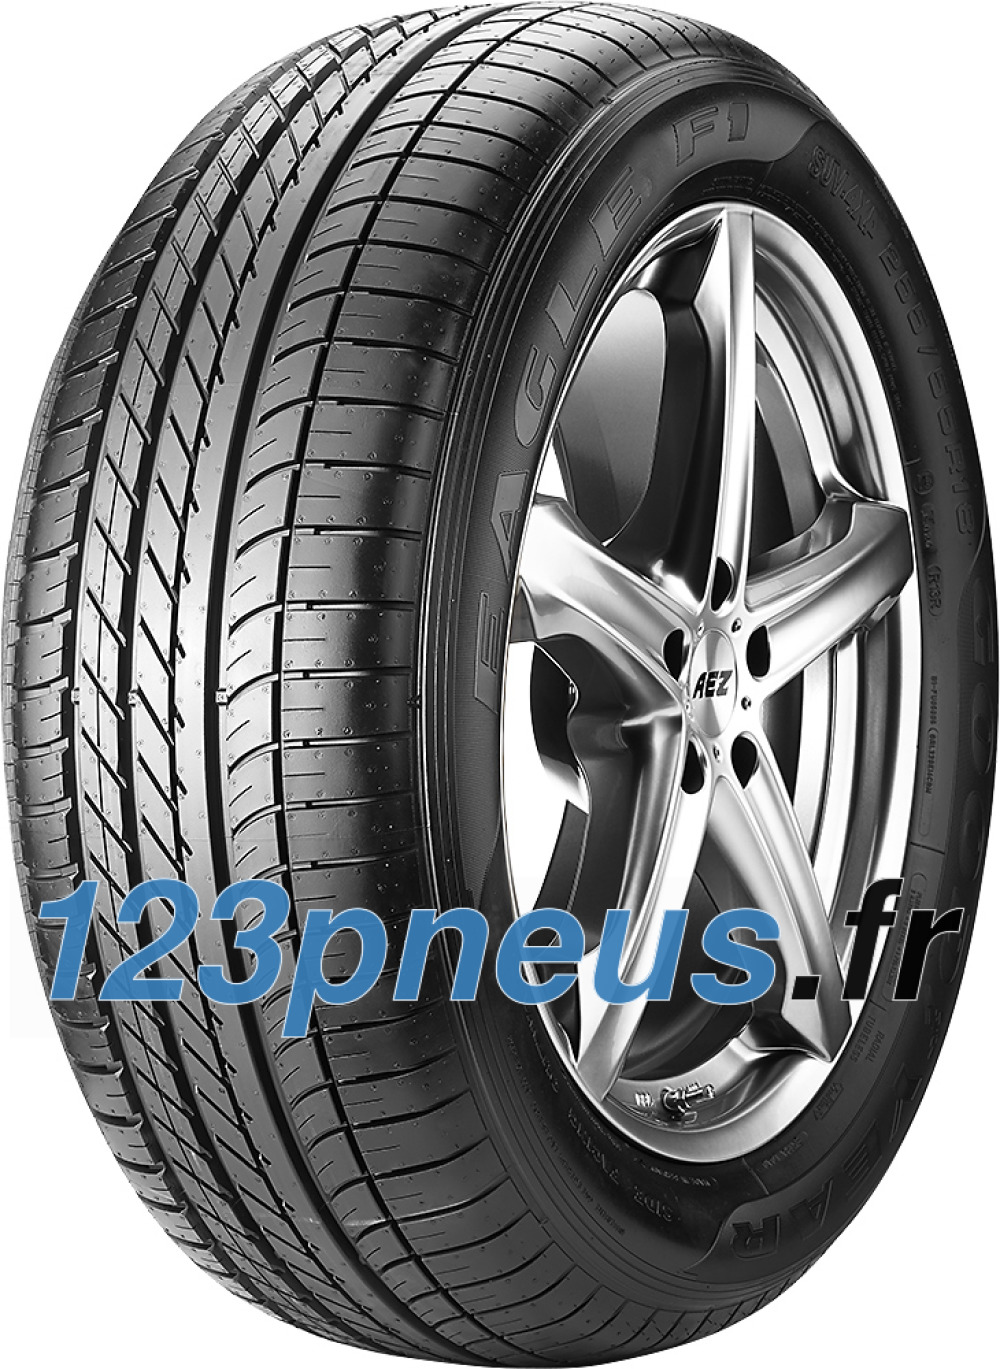 Goodyear Eagle F1 Asymmetric SUV